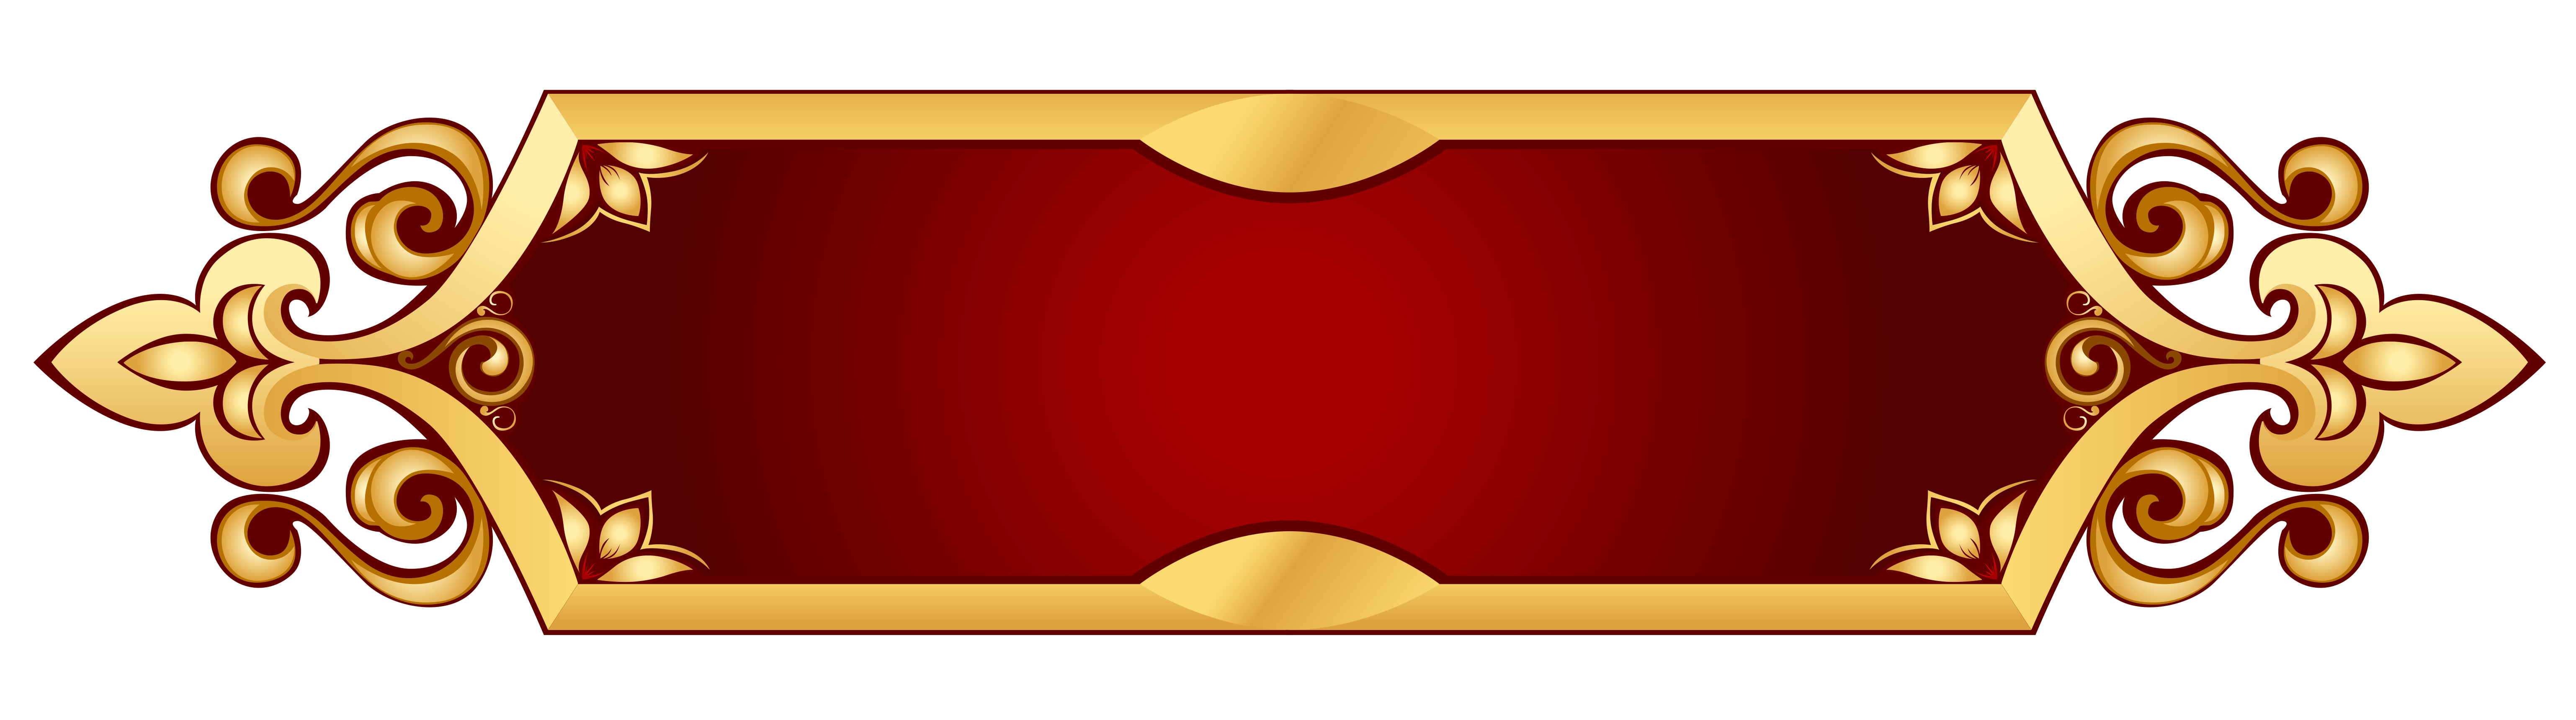 Book banner clipart picture royalty free Decorative Banner Transparent PNG Picture | Gallery Yopriceville ... picture royalty free